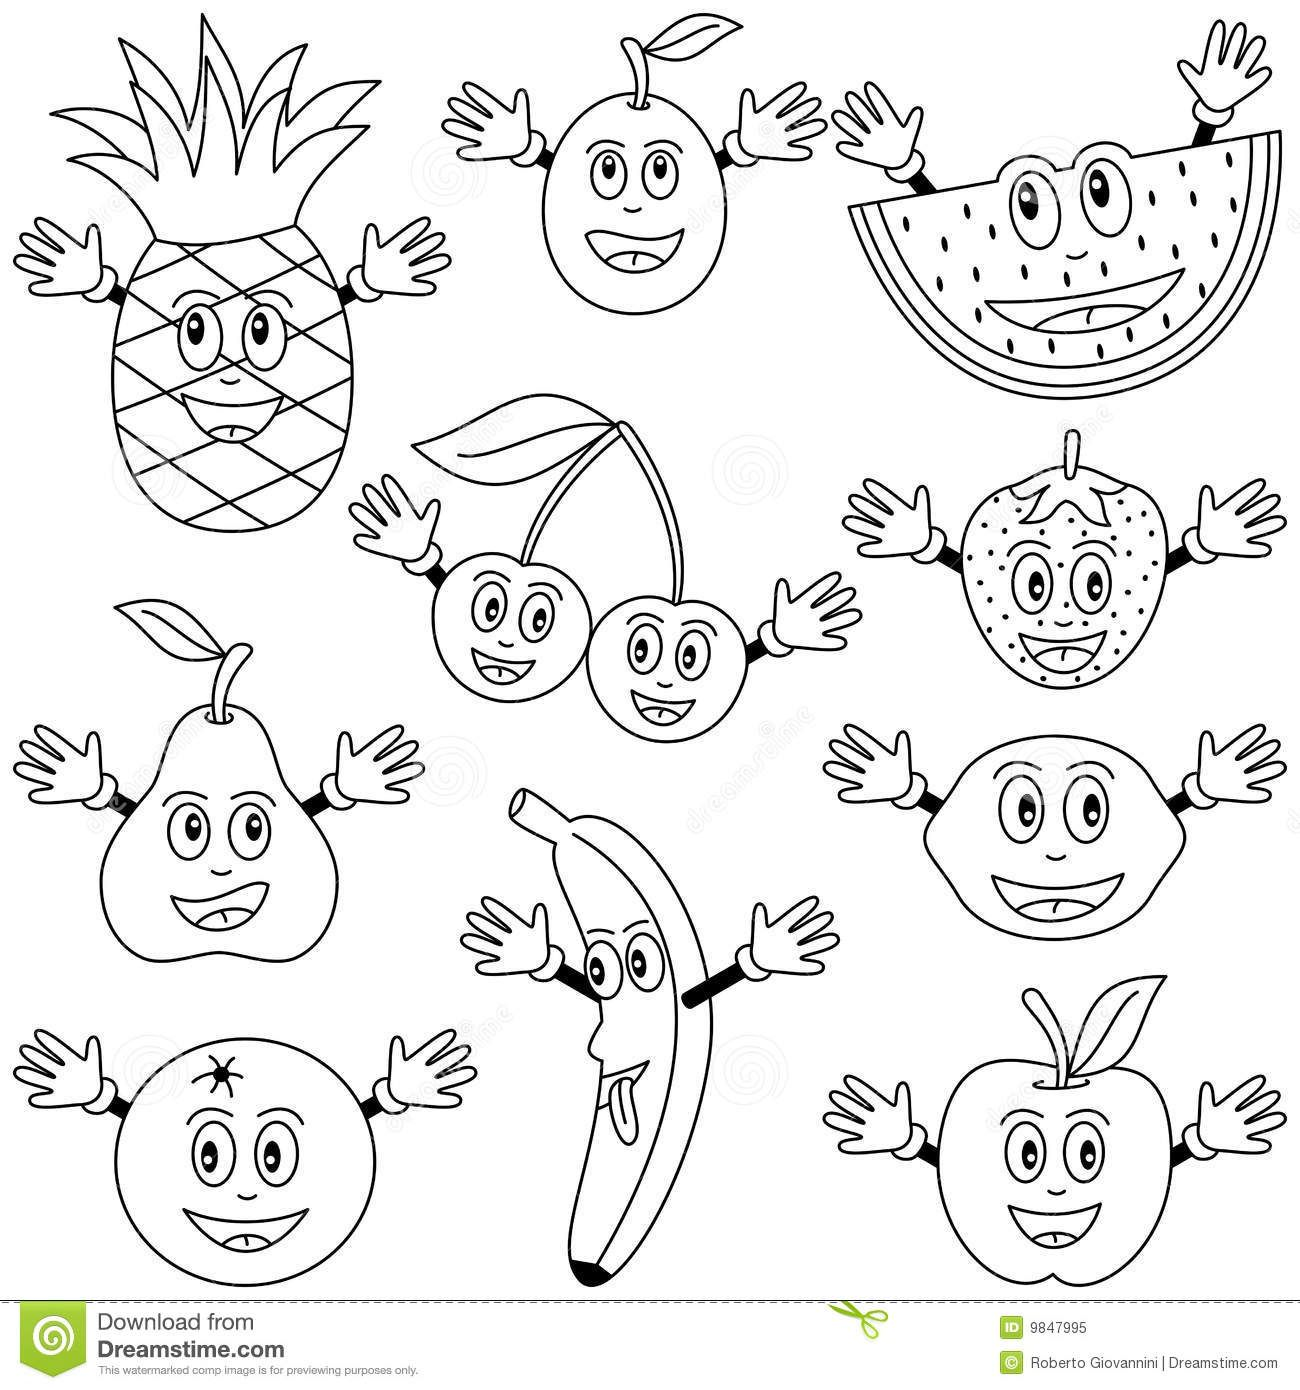 w for watermelon fruit coloring pages cute drawing kids fruit